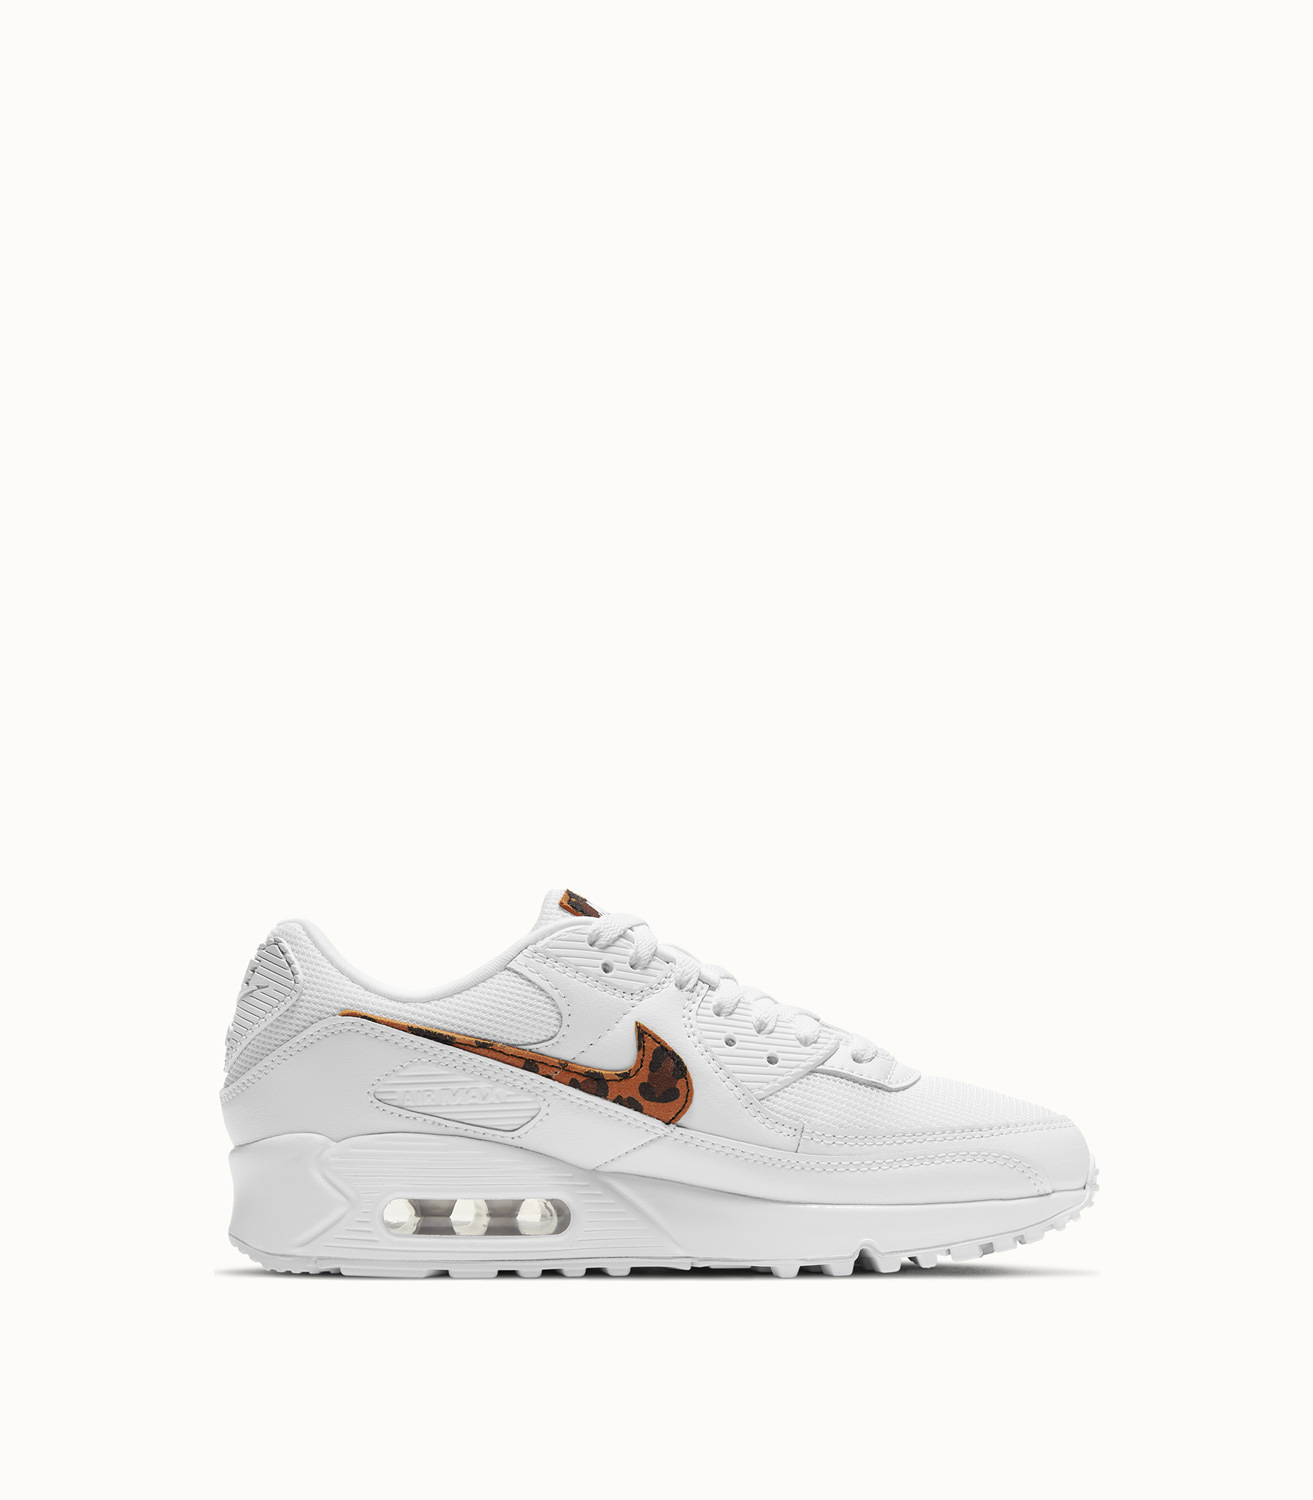 AIR MAX 90 AX SNEAKERS COLOR WHITE